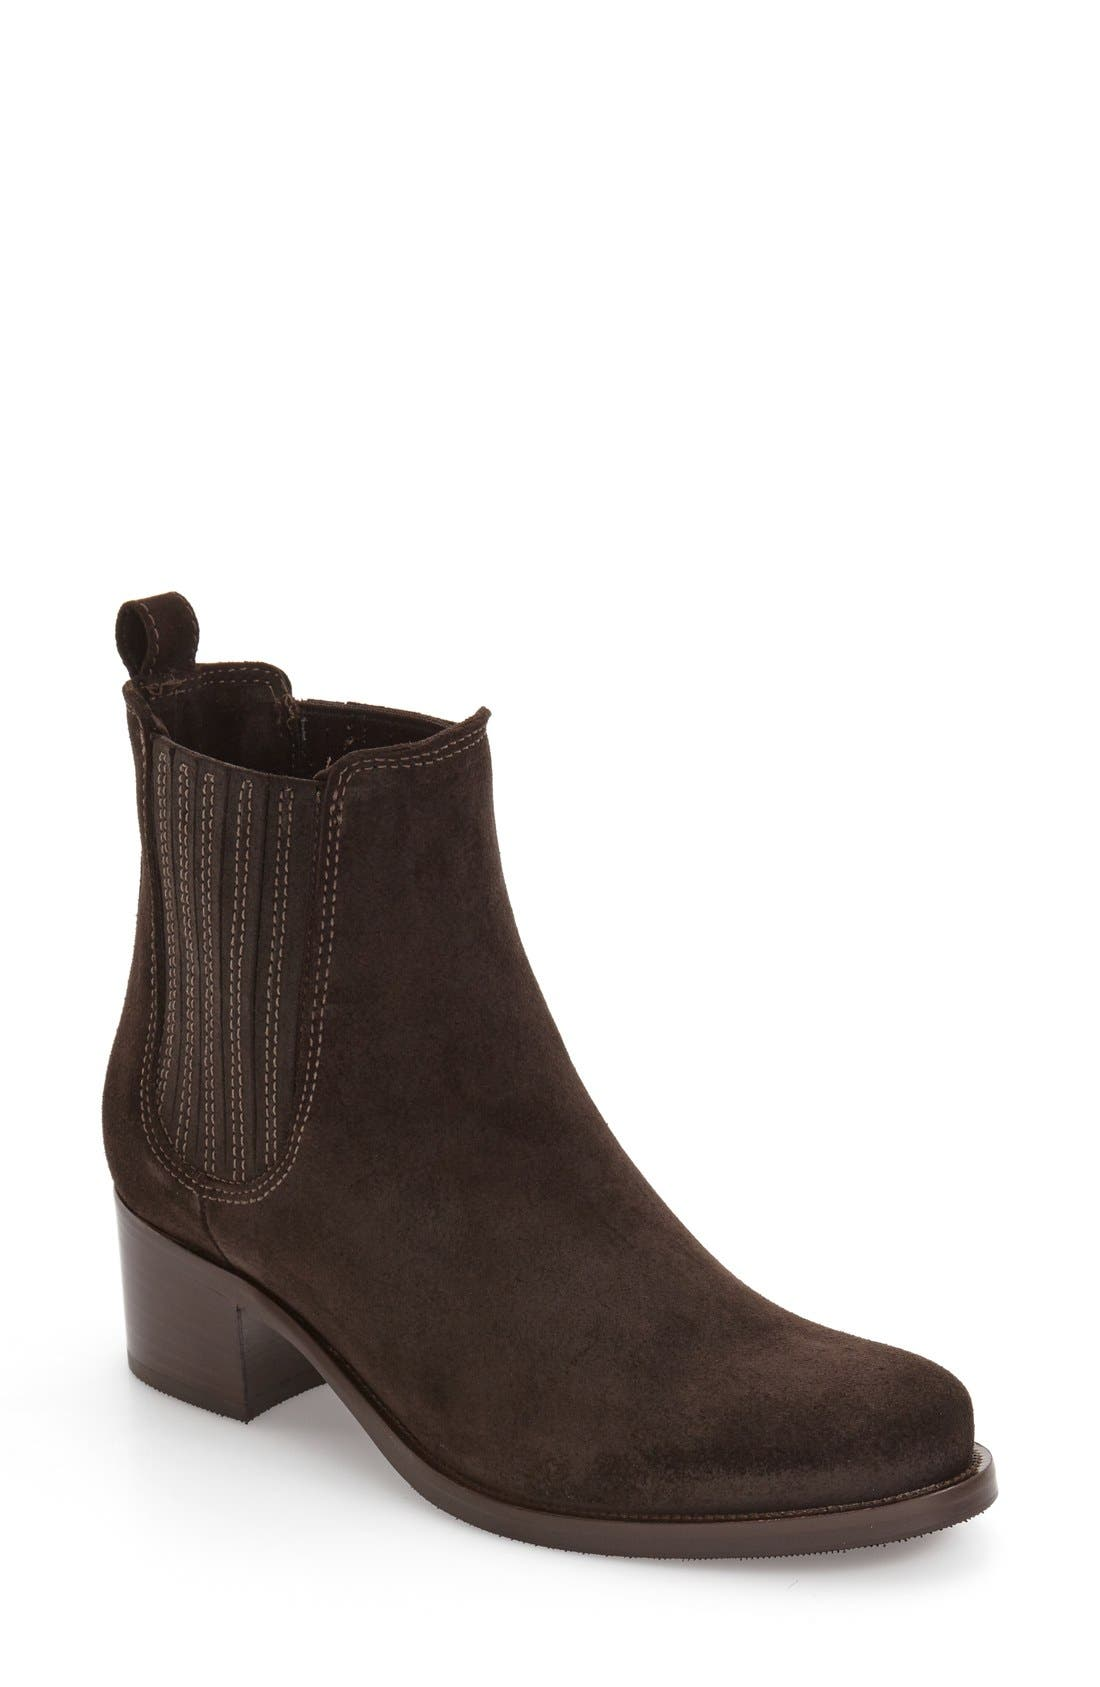 La Canadienne Prince Waterproof Bootie (Women)